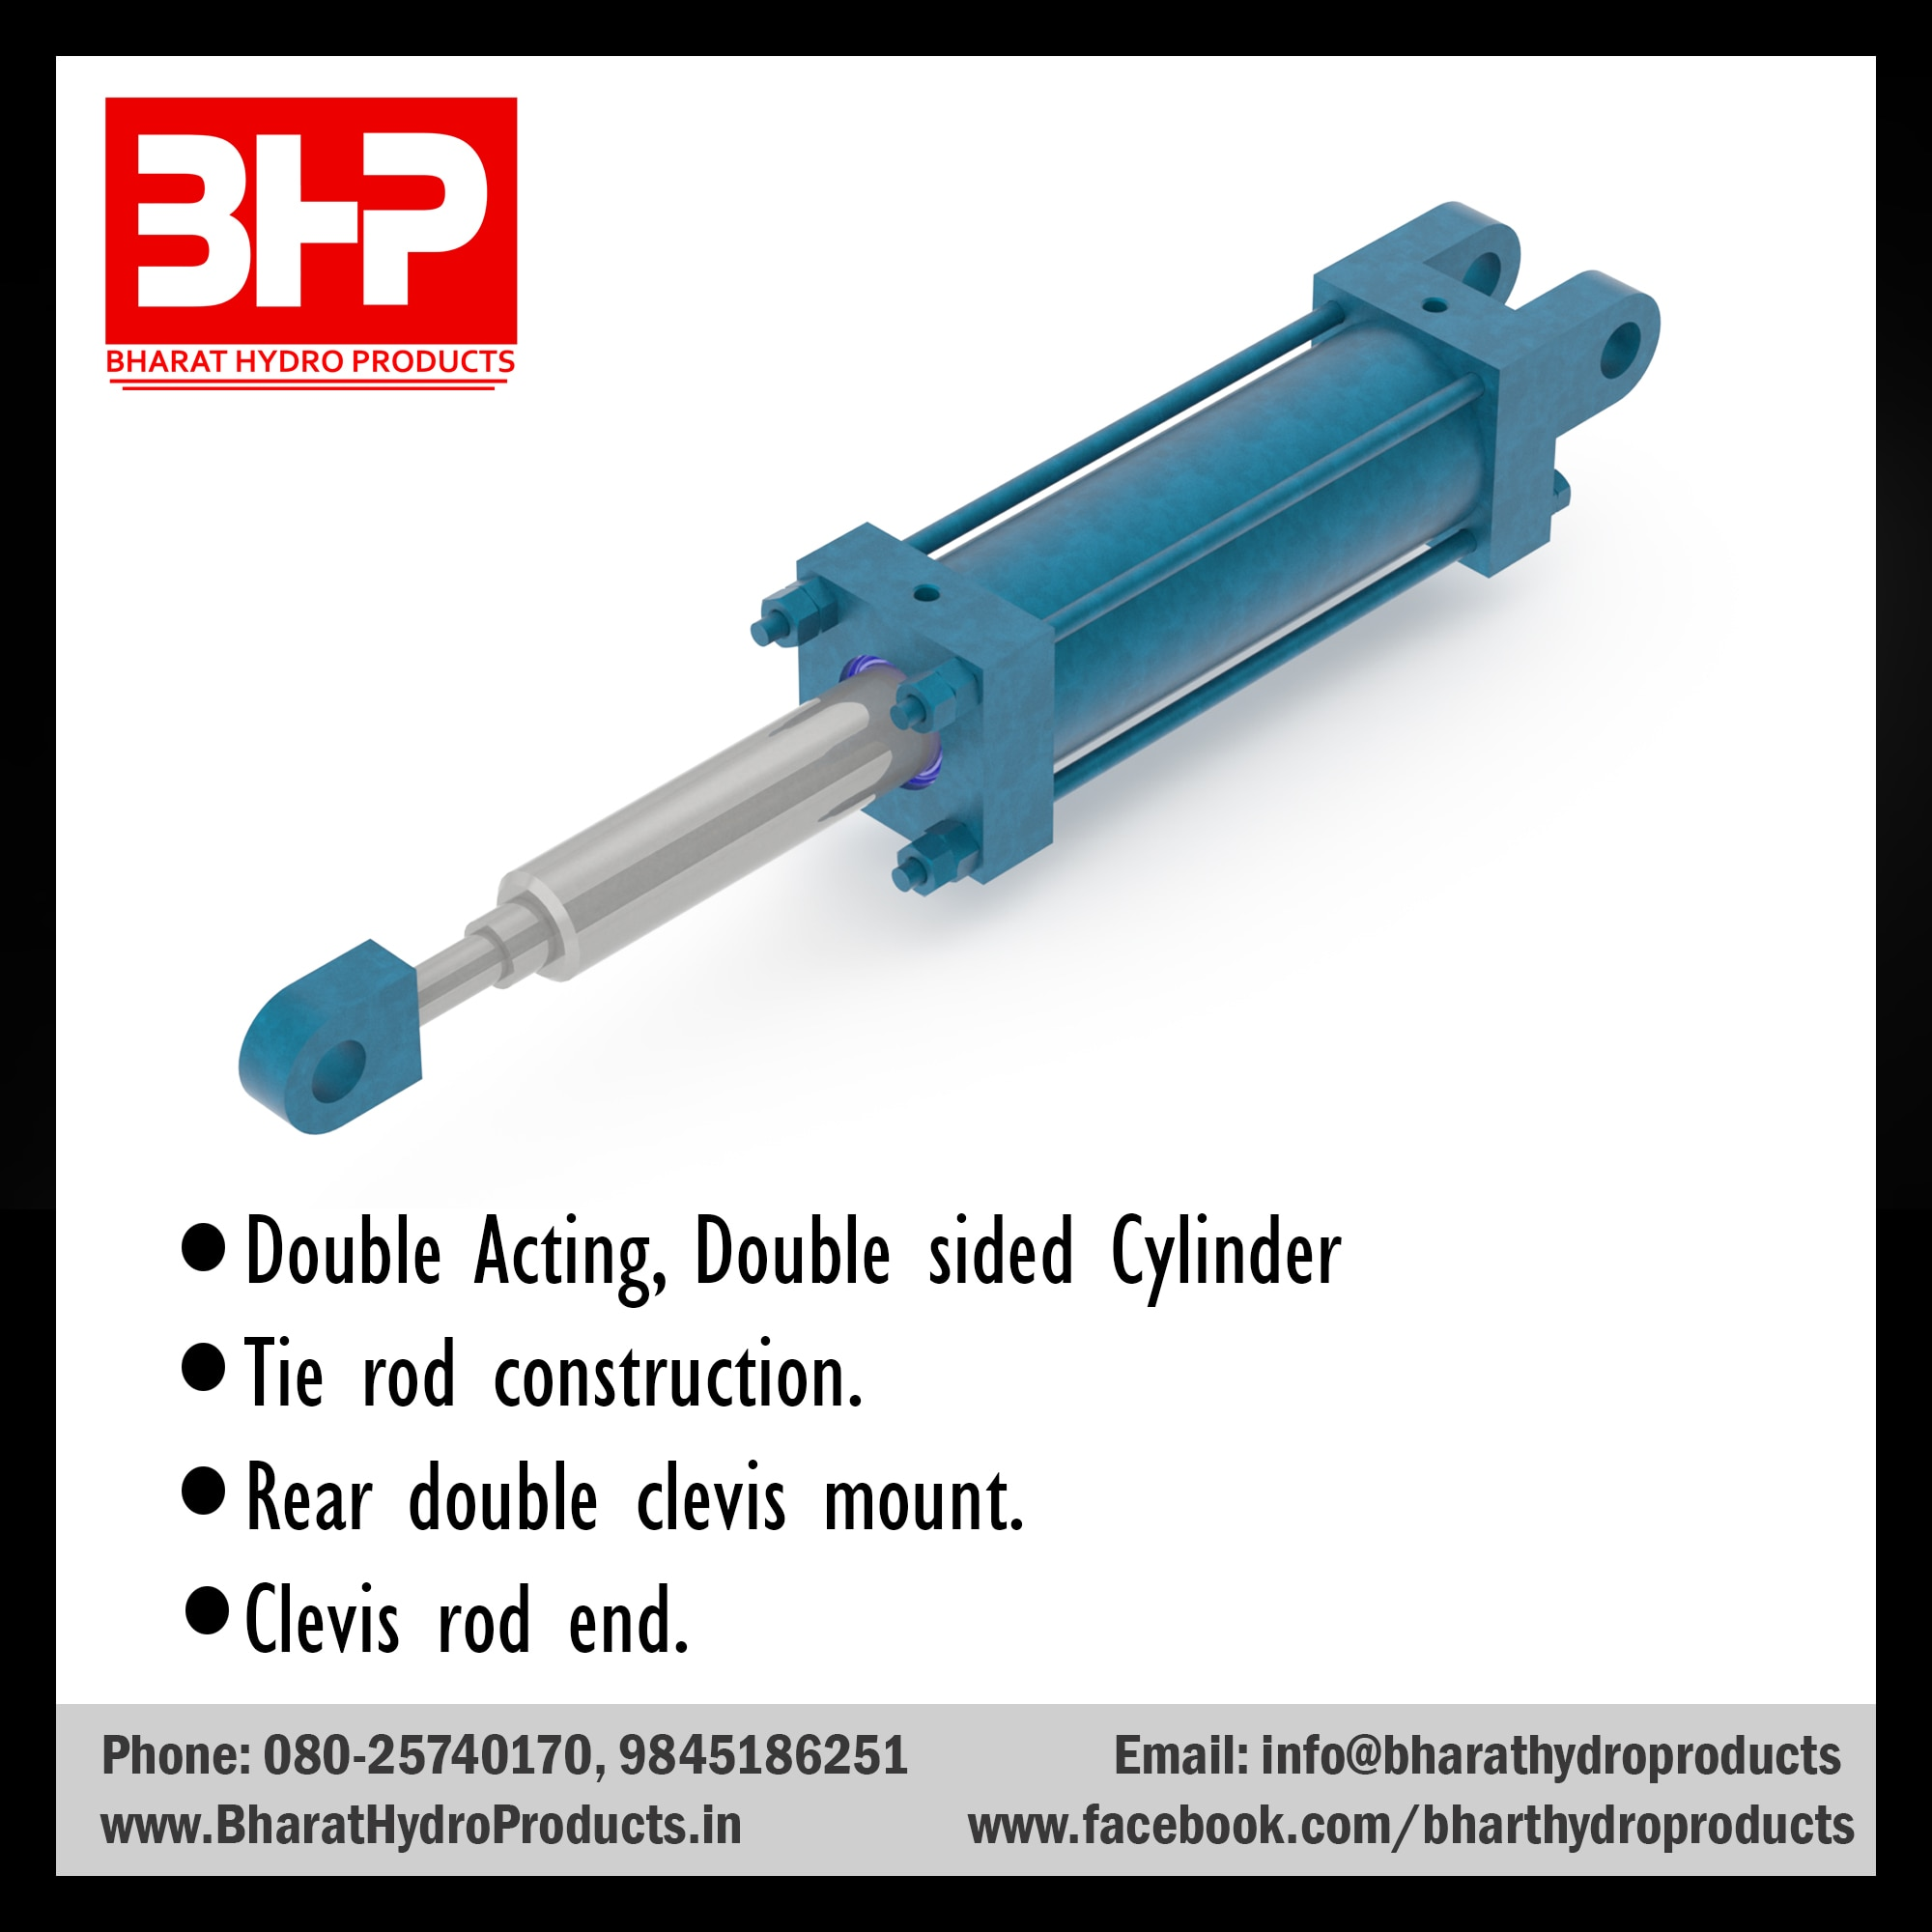 Double Acting, Double sided Cylinder manufacturers in Bangalore Tie rod construction manufacturers in Bangalore Rear double clevis mount manufacturers in Bangalore Clevis rod end manufacturers in Bangalore.